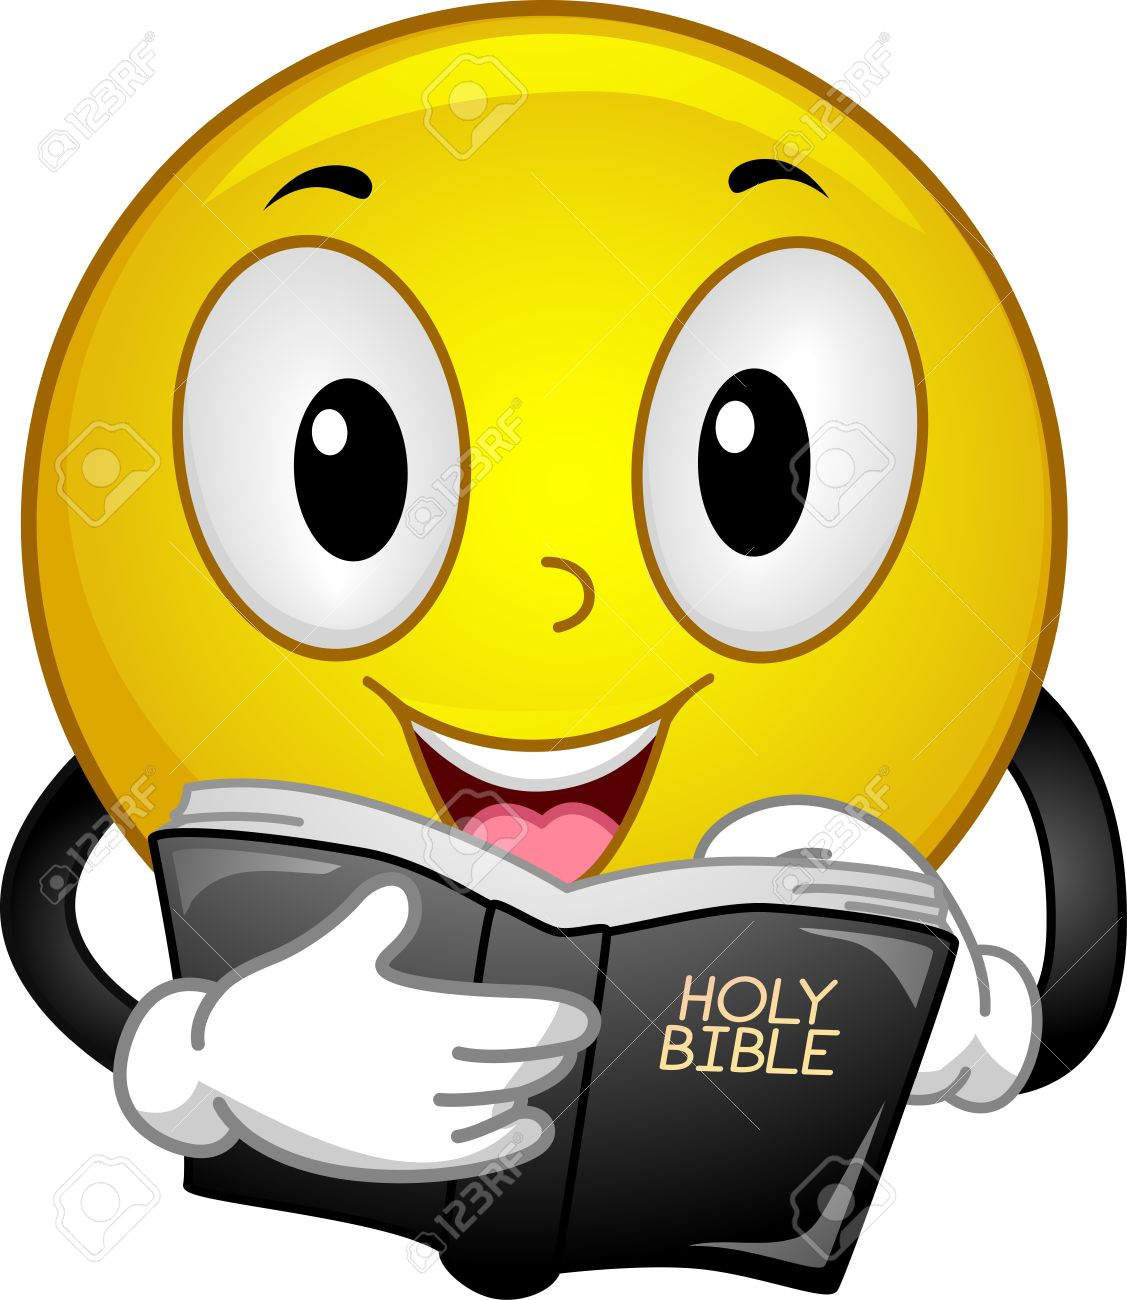 hight resolution of illustration mascot illustration of a happy yellow smiley reading passages from the holy bible